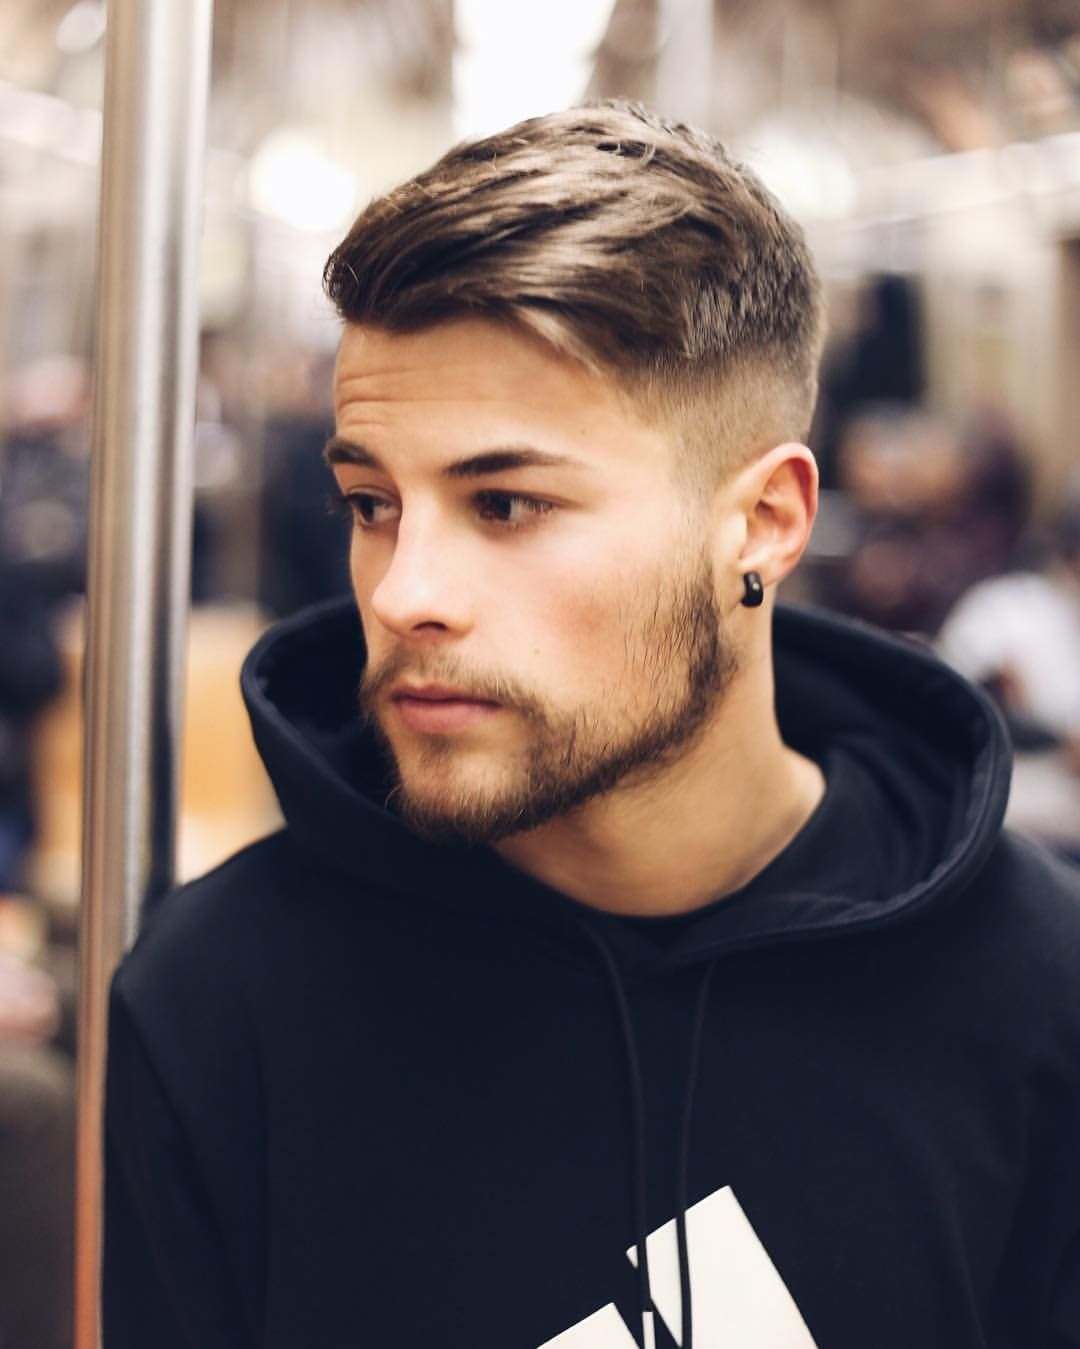 New Hairstyles For Men 49 Cool New Hairstyles For Men 2017  Haircuts Hair Style And Hair Cuts